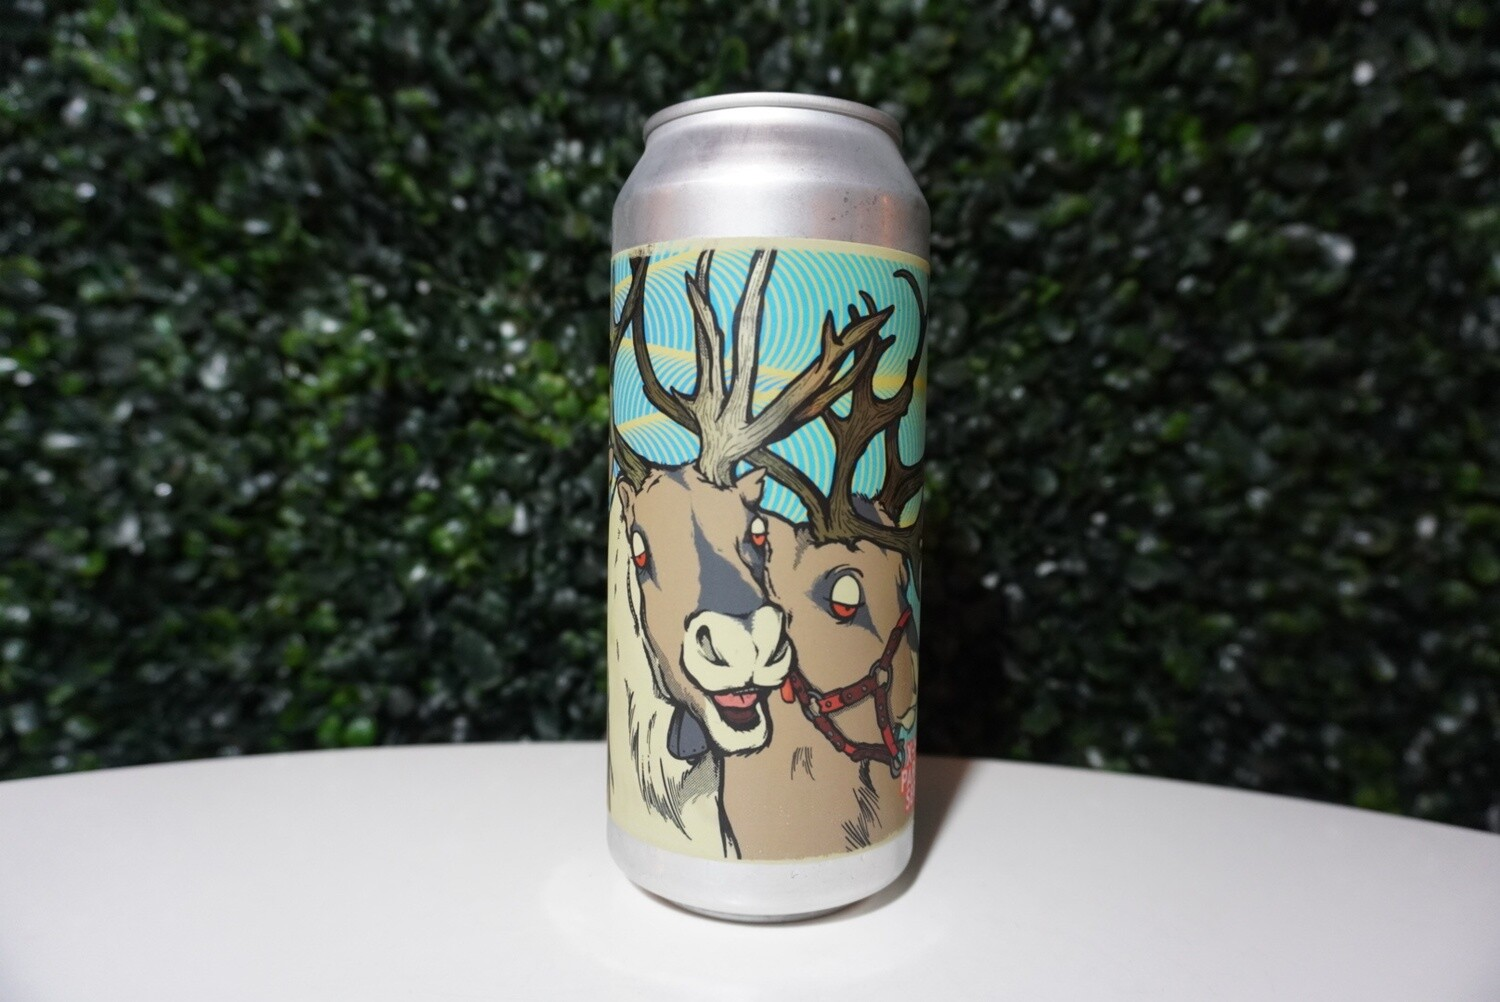 Tripping Animals - Los Tres Renos - Sour - 6% ABV - 16oz Can